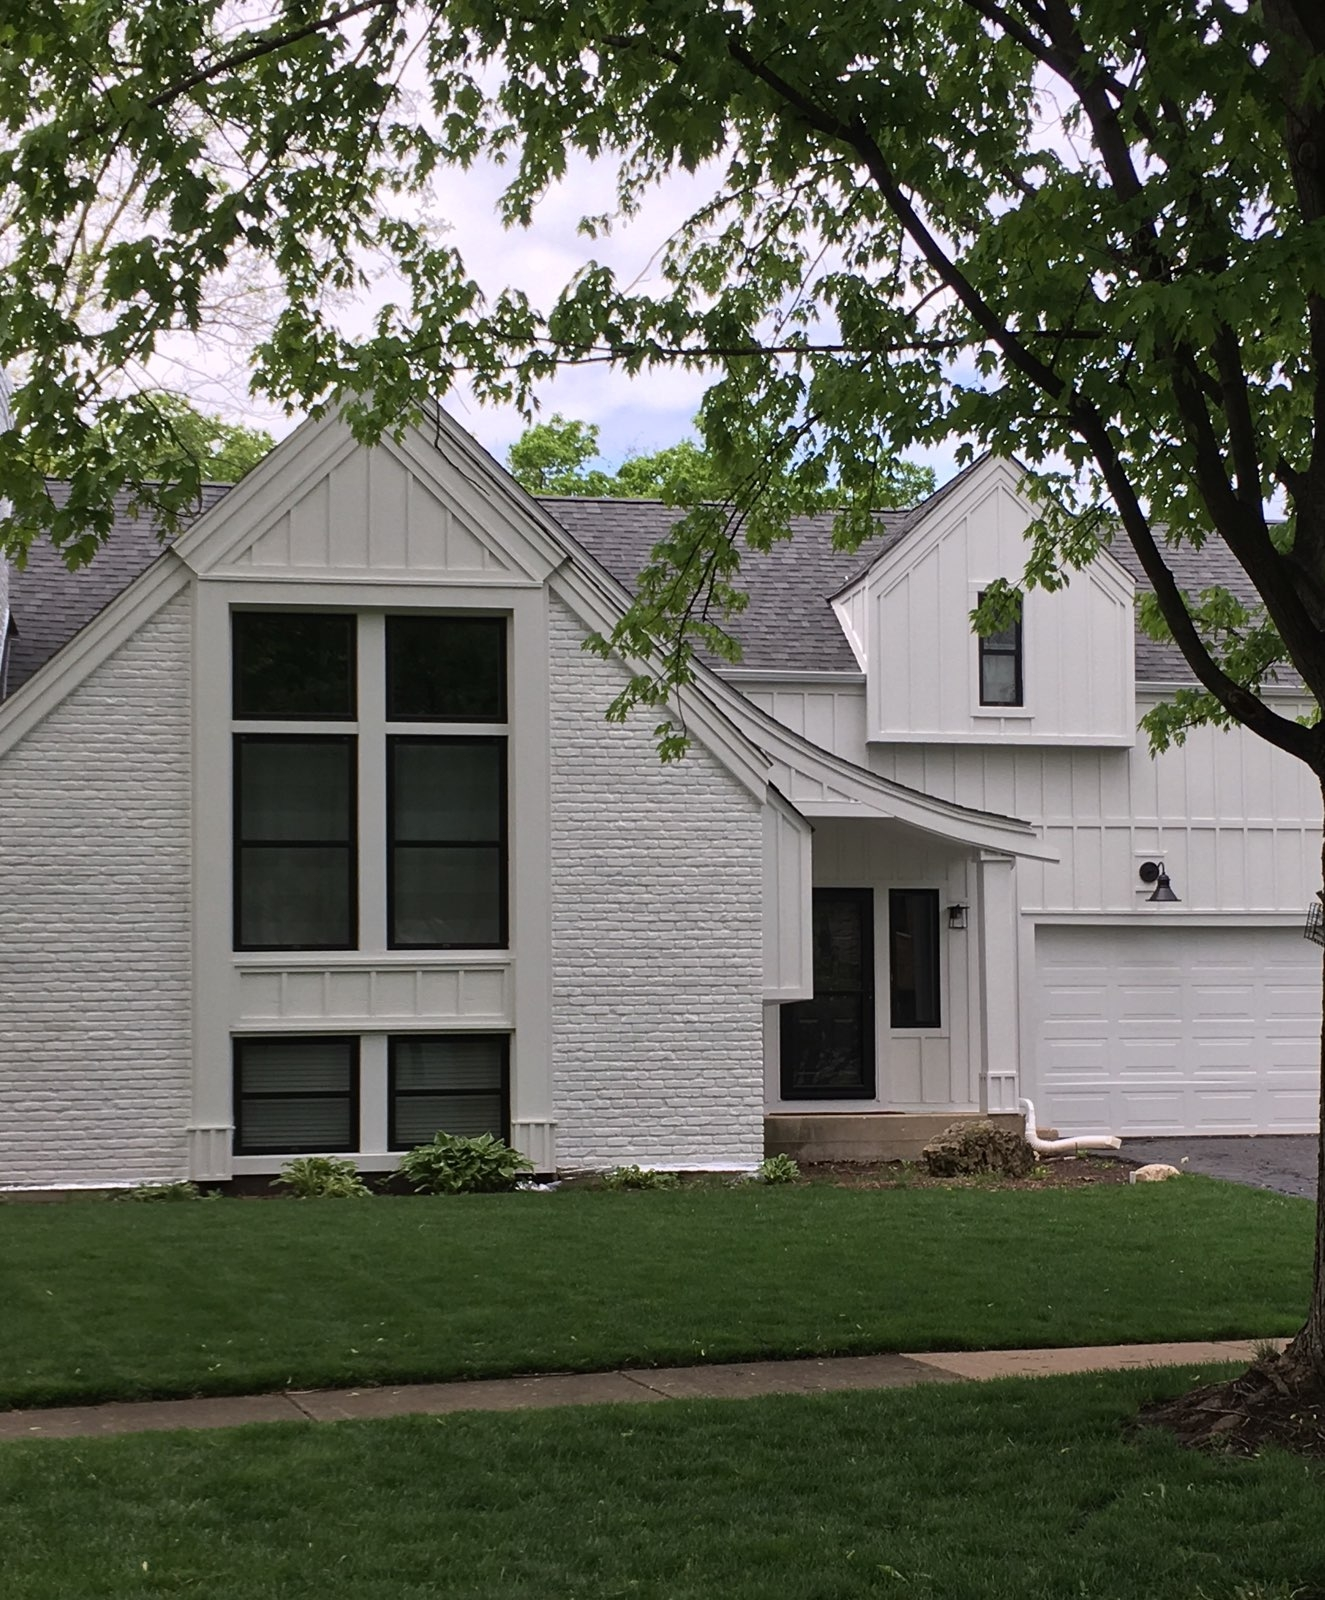 two story home with painted white brick has large black double-hung windows